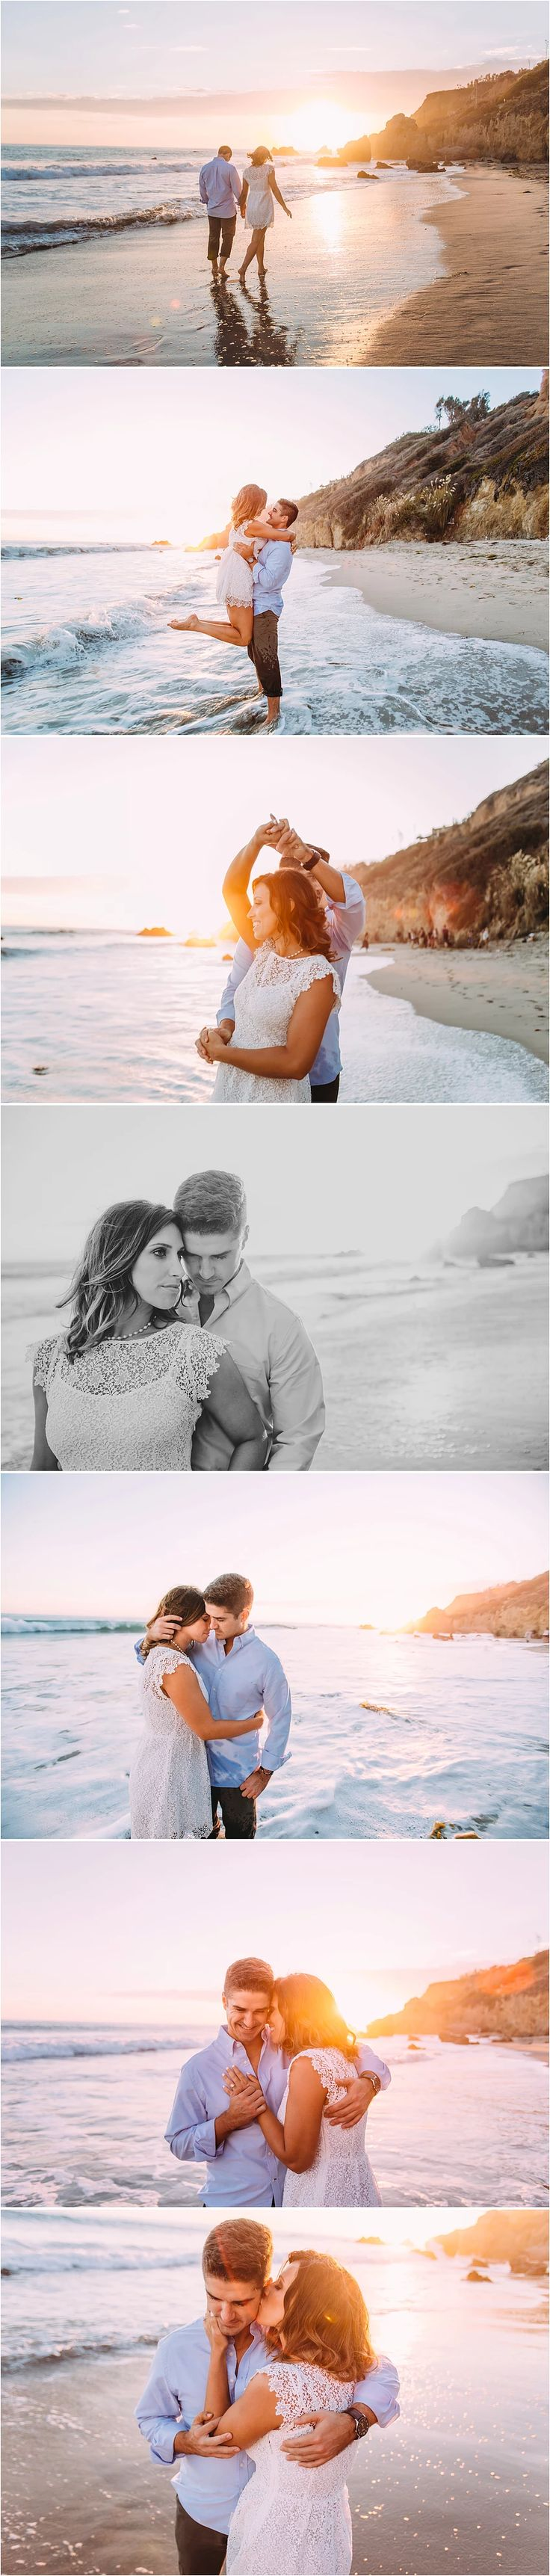 Tyler + Liz// Malibu Engagement | Giny Ann Photography  Malibu Engagement, El Matador State Beach Engagement, Malibu Wedding Photographer, Malibu, California Engagement Photography, Malibu Engagement Photography, Beach Engagement Photography